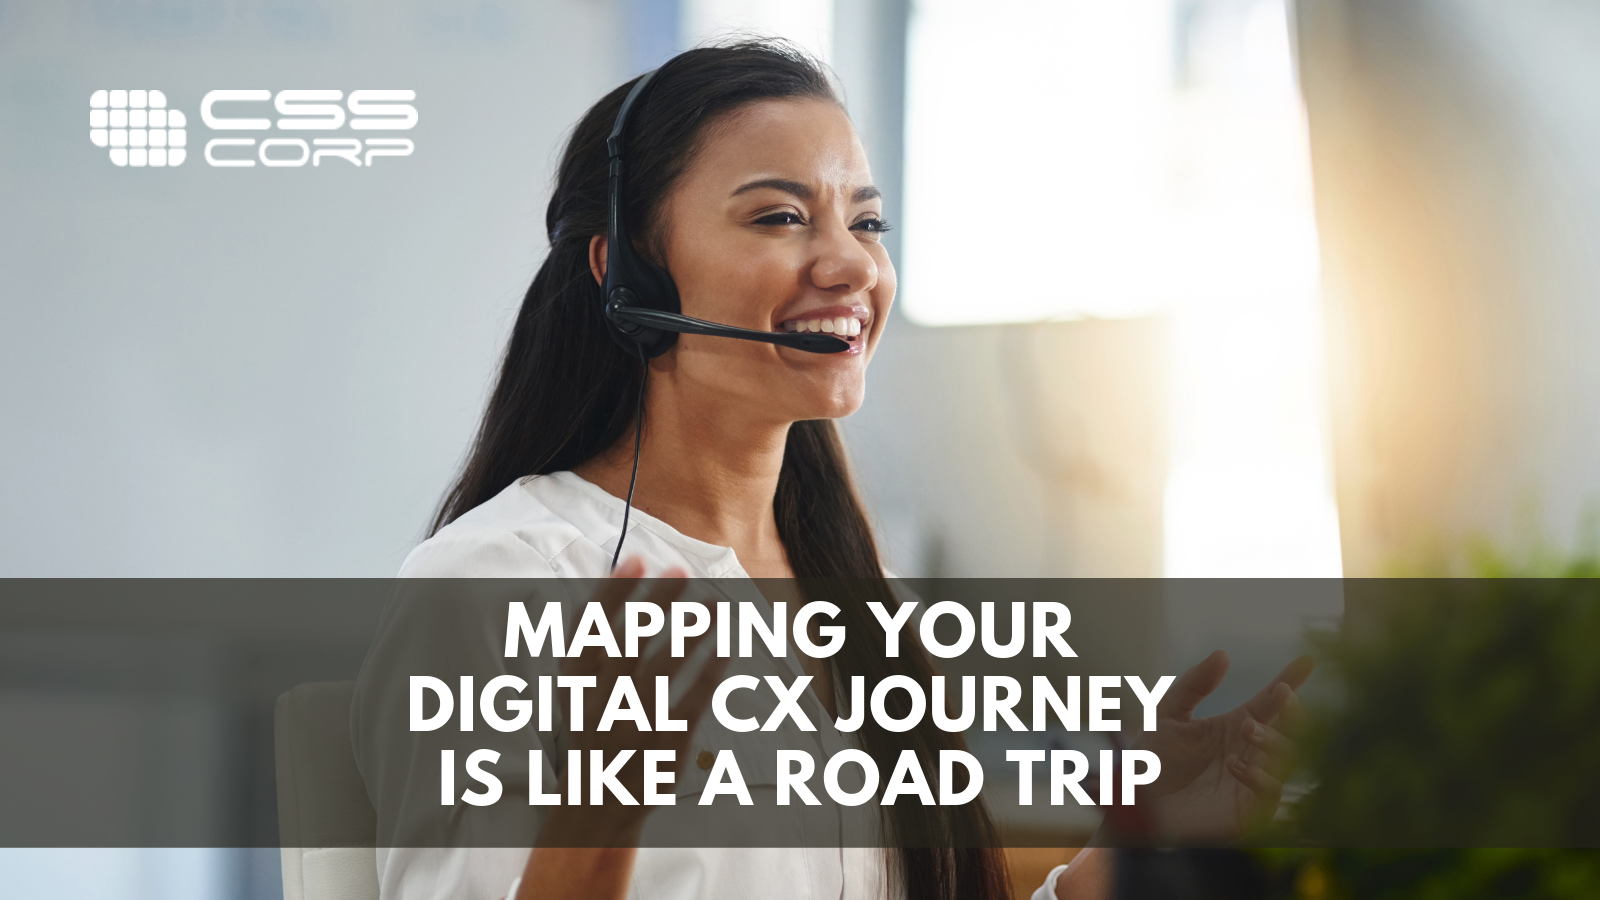 Mapping Your Digital CX Journey is Like A Road Trip